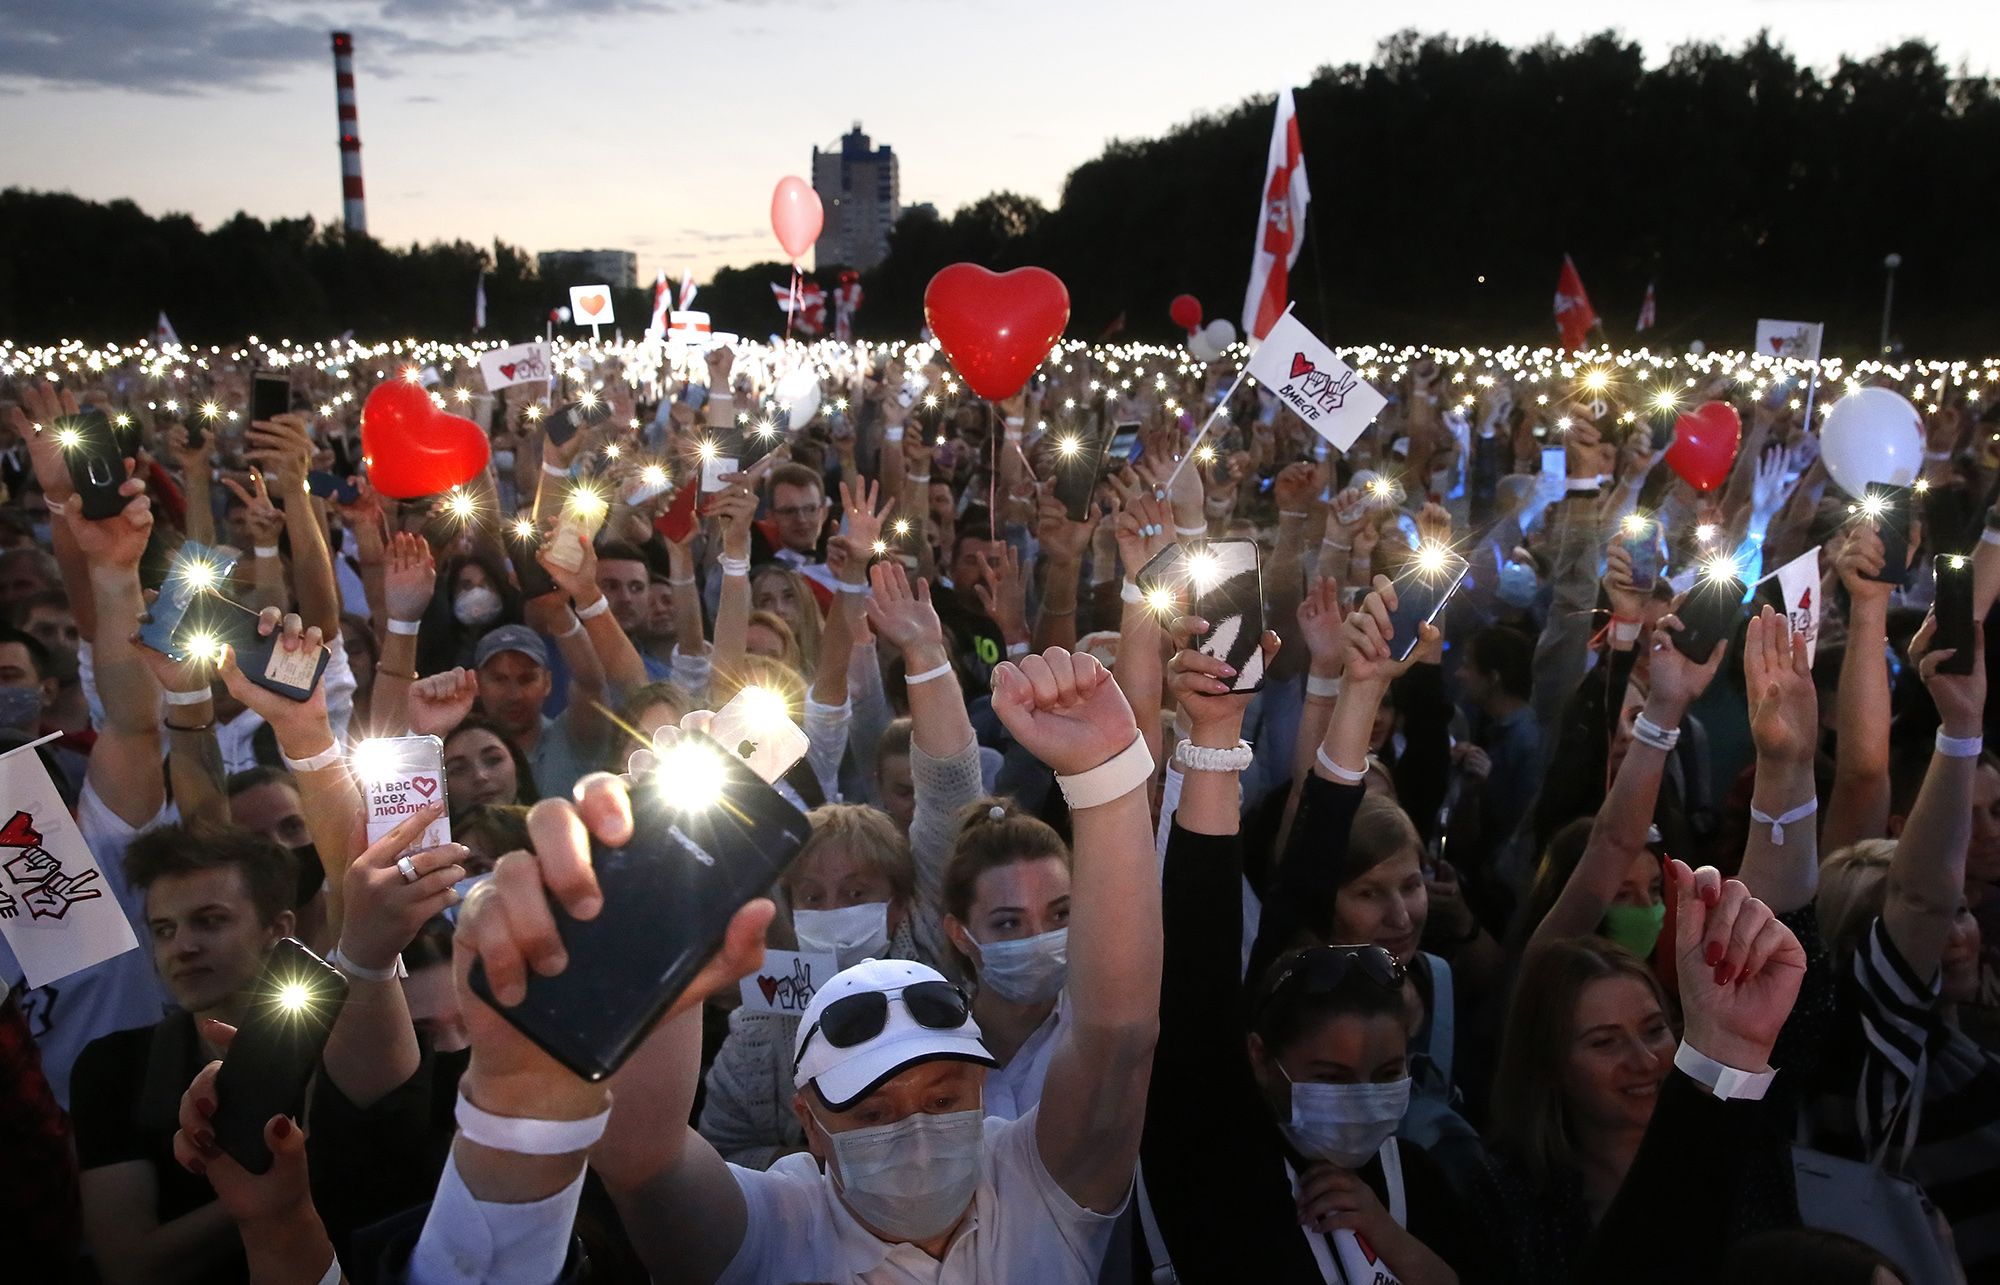 People attend a campaign rally of Belarusian opposition presidential candidate Svetlana Tikhanovskaya in Minsk, Belarus, 30 July 2020. The presidential election in Belarus is scheduled to take place on 09 August 2020. КРЕДИТ